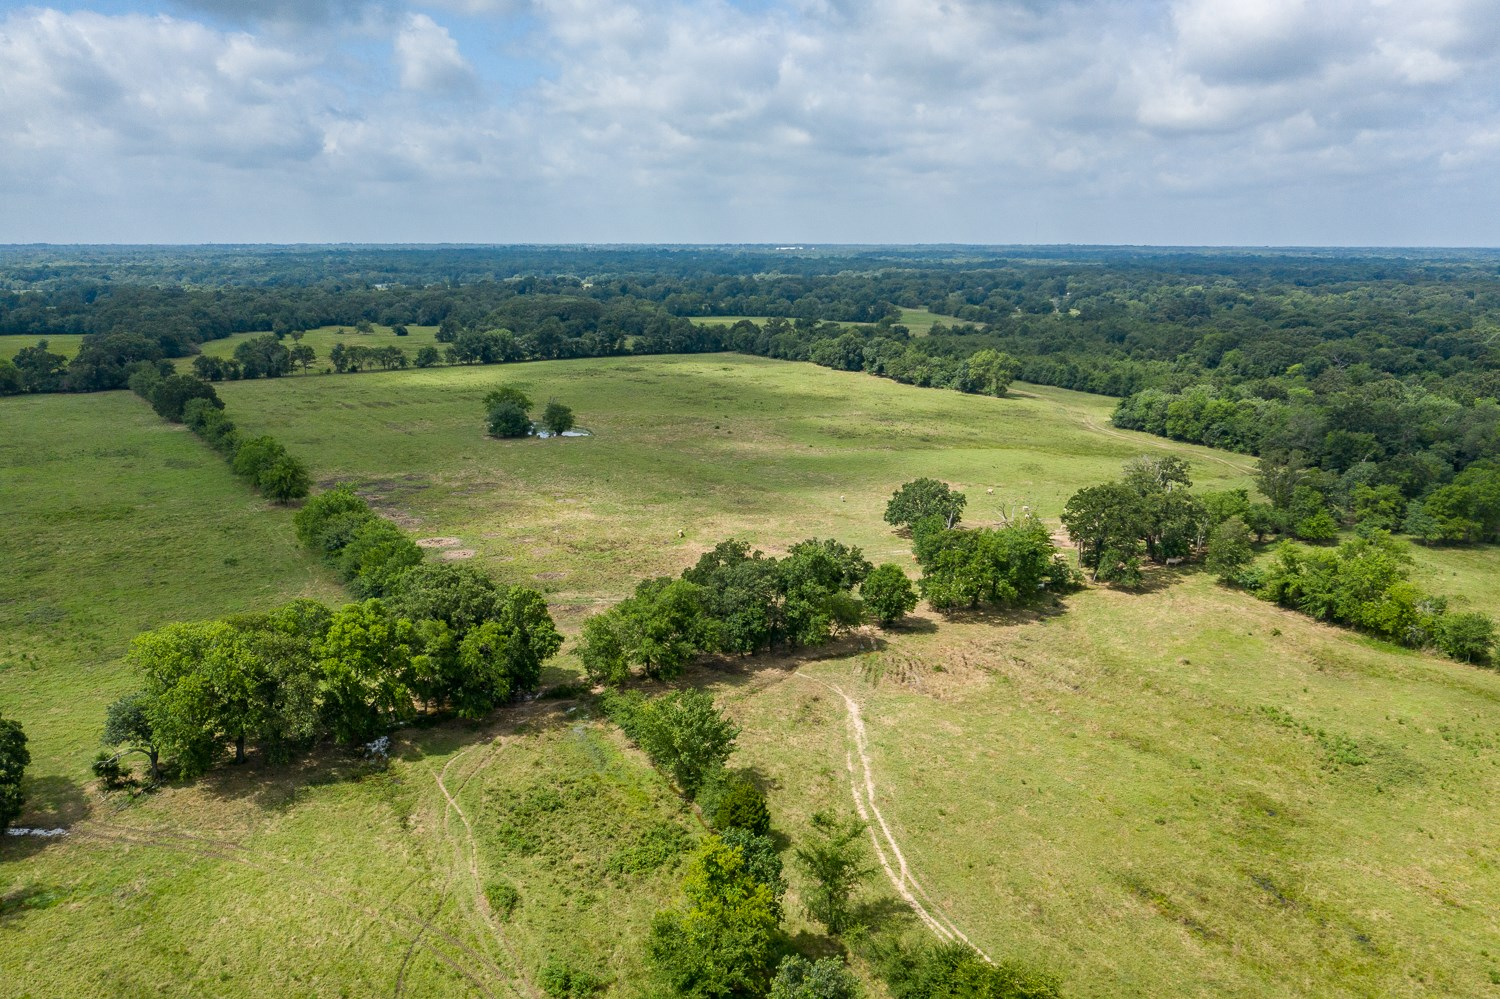 East Texas Pasture Land Hardwoods Hunting North of Emory TX